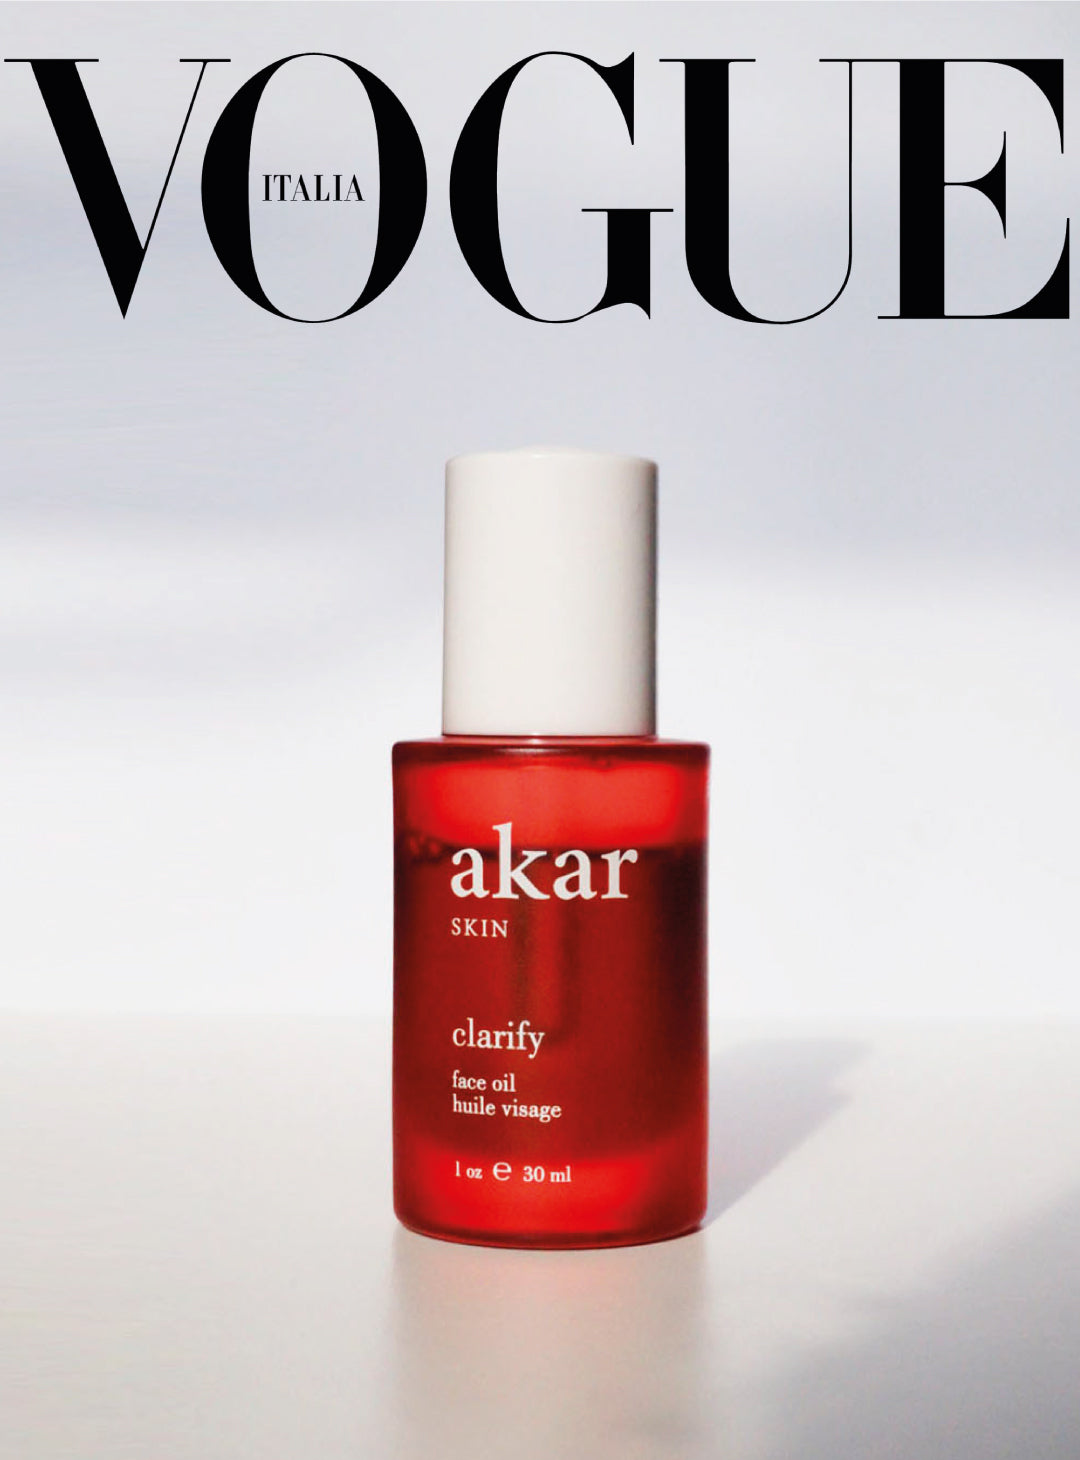 Vogue, italia, clarify, face oil, akar skin